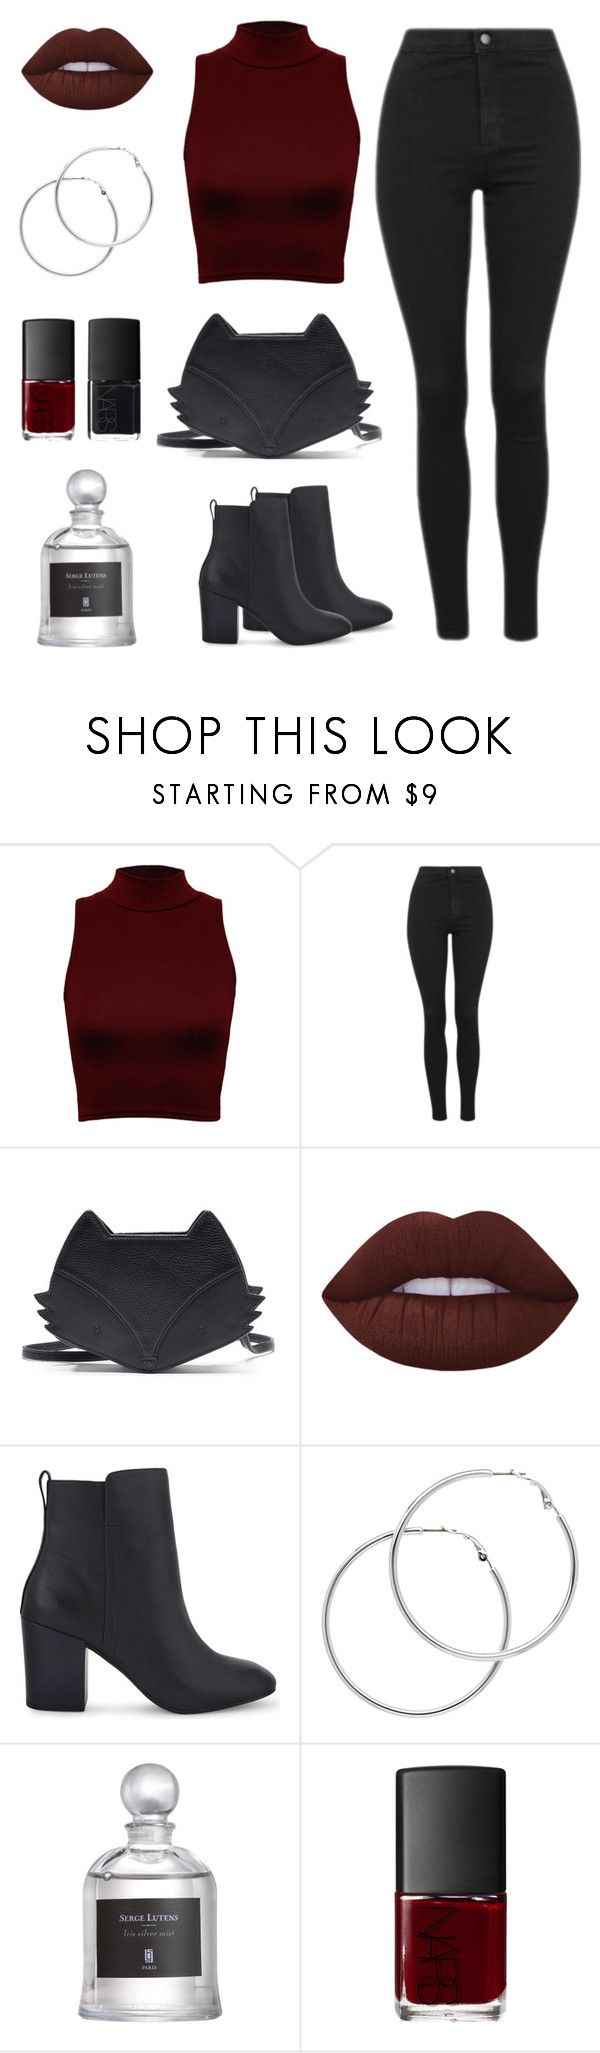 """Untitled #83"" by mikki11111111 ❤ liked on Polyvore featuring WearAll, Topshop, Lime Crime, ALDO, Melissa Odabash, Serge Lutens, NARS Cosmetics, college and fox"